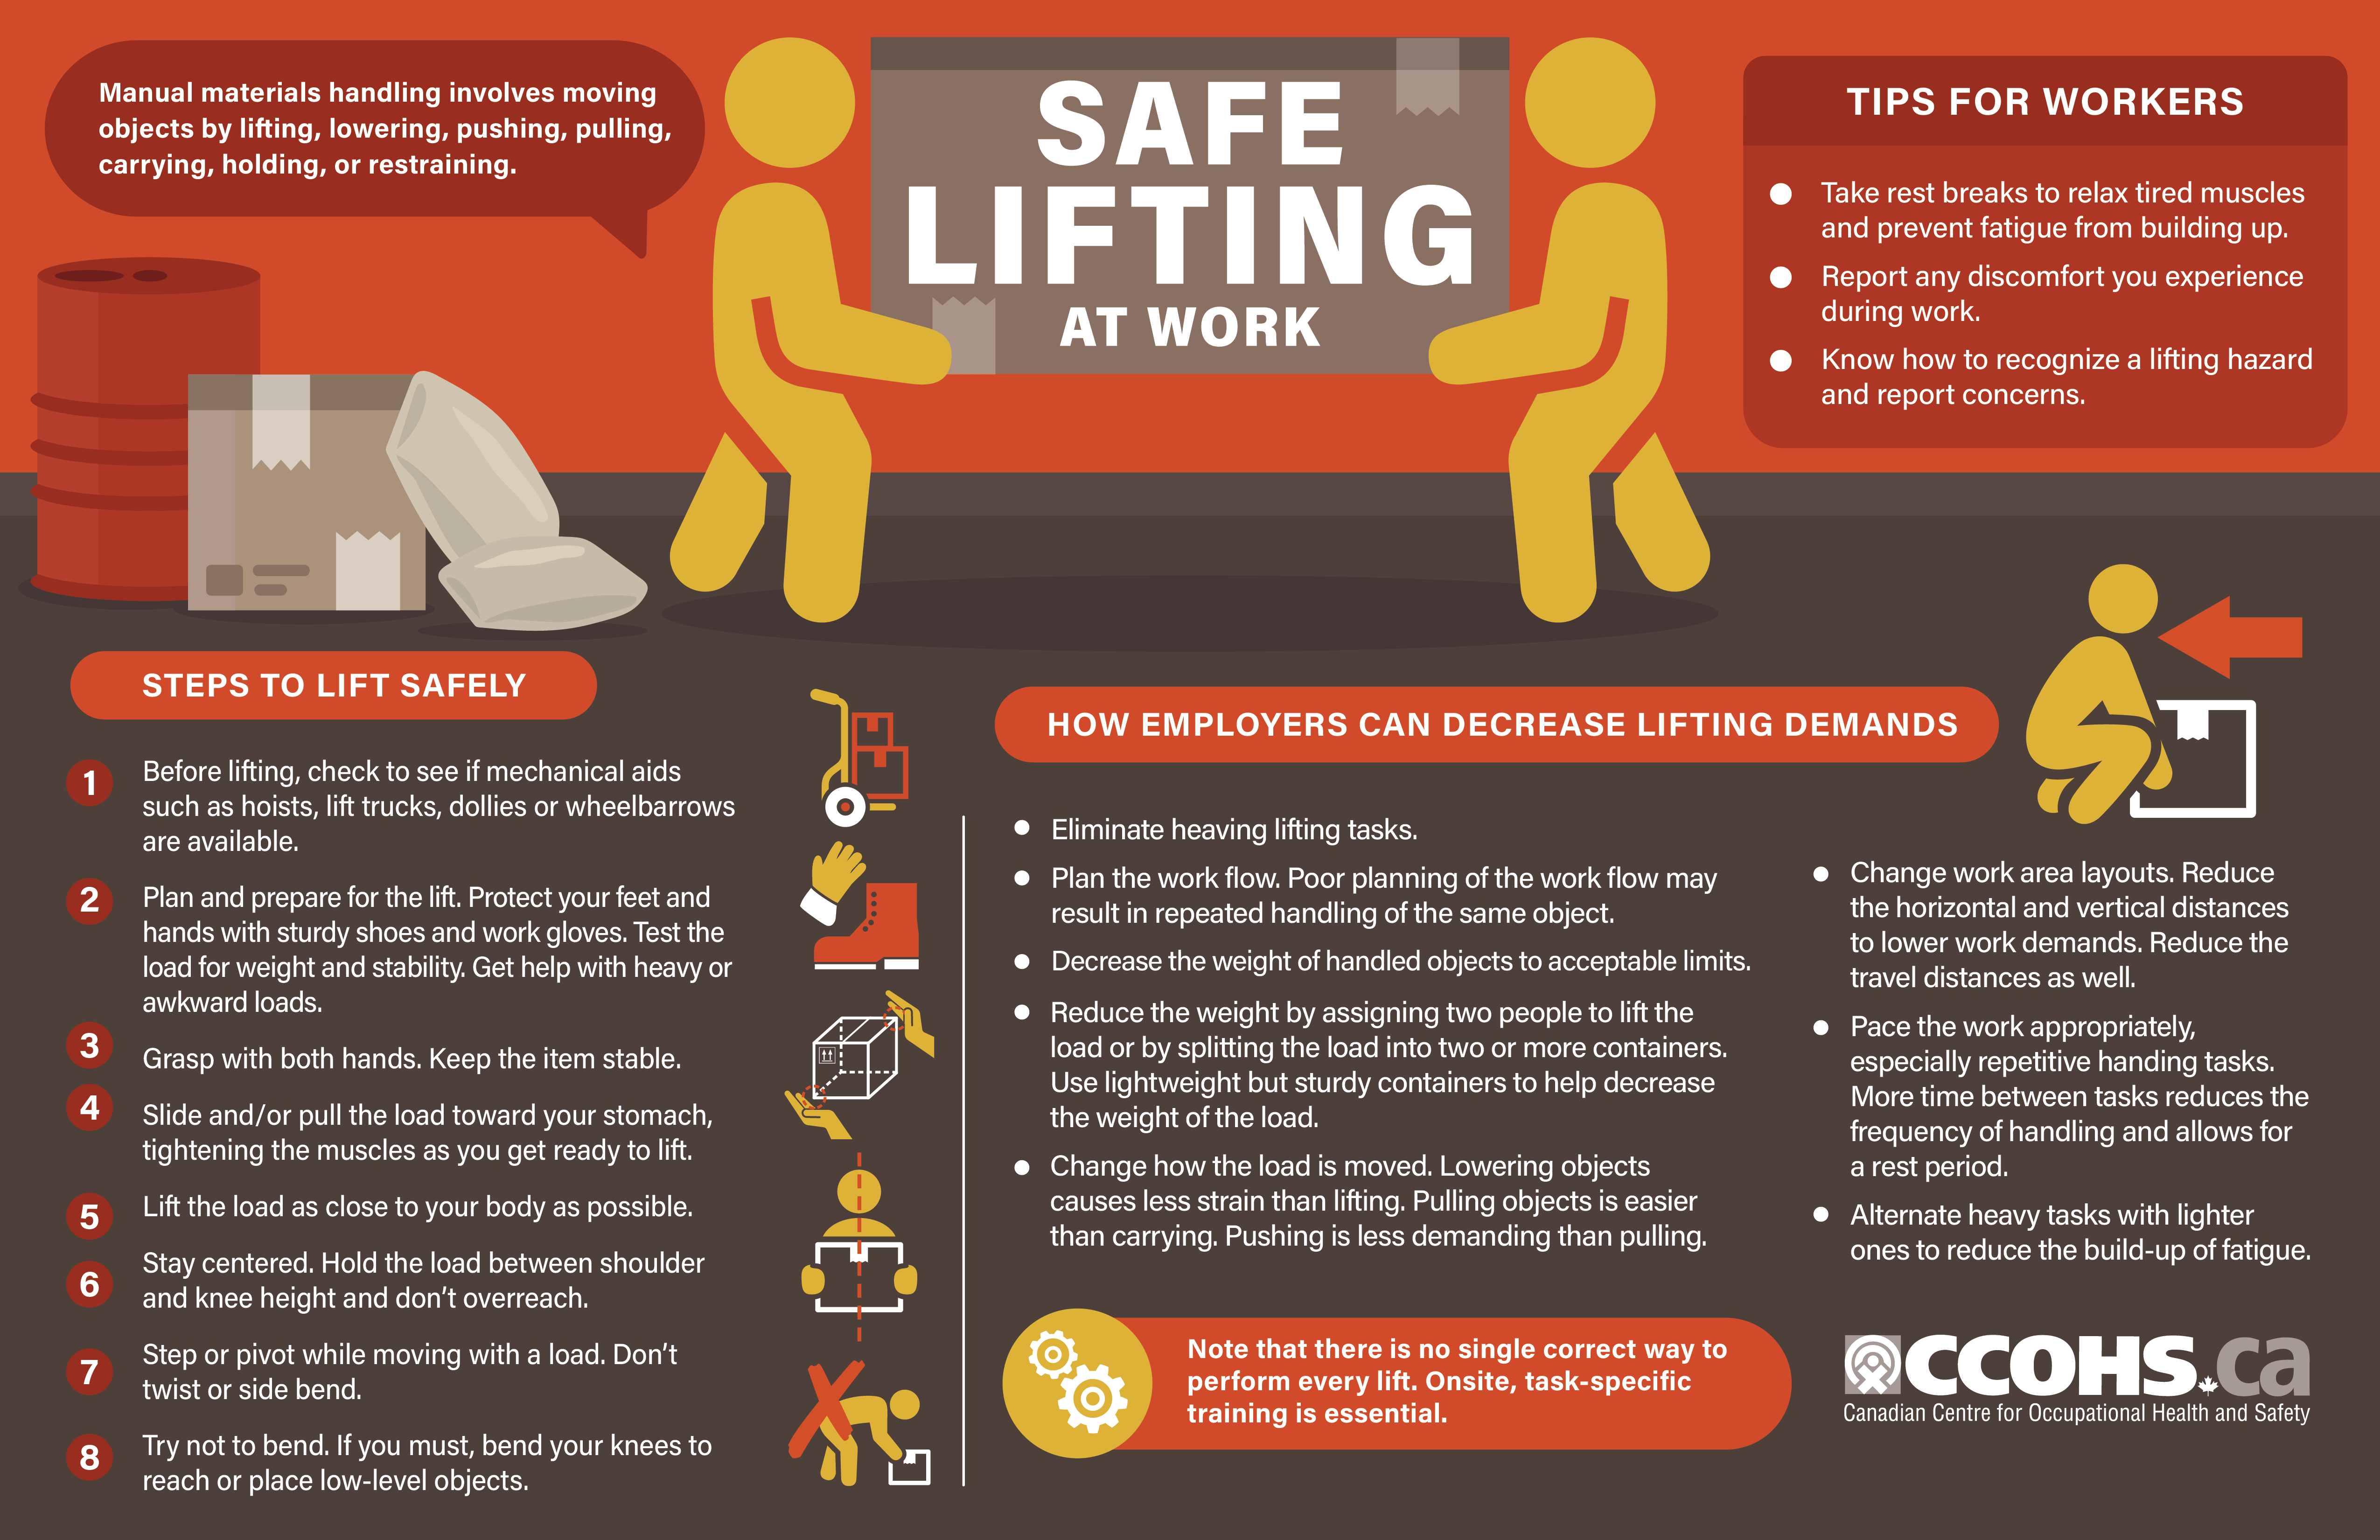 Preview an infographic outlining tips and steps to lifting safely, as well as actions that employers can take to reduce lifting demands at work